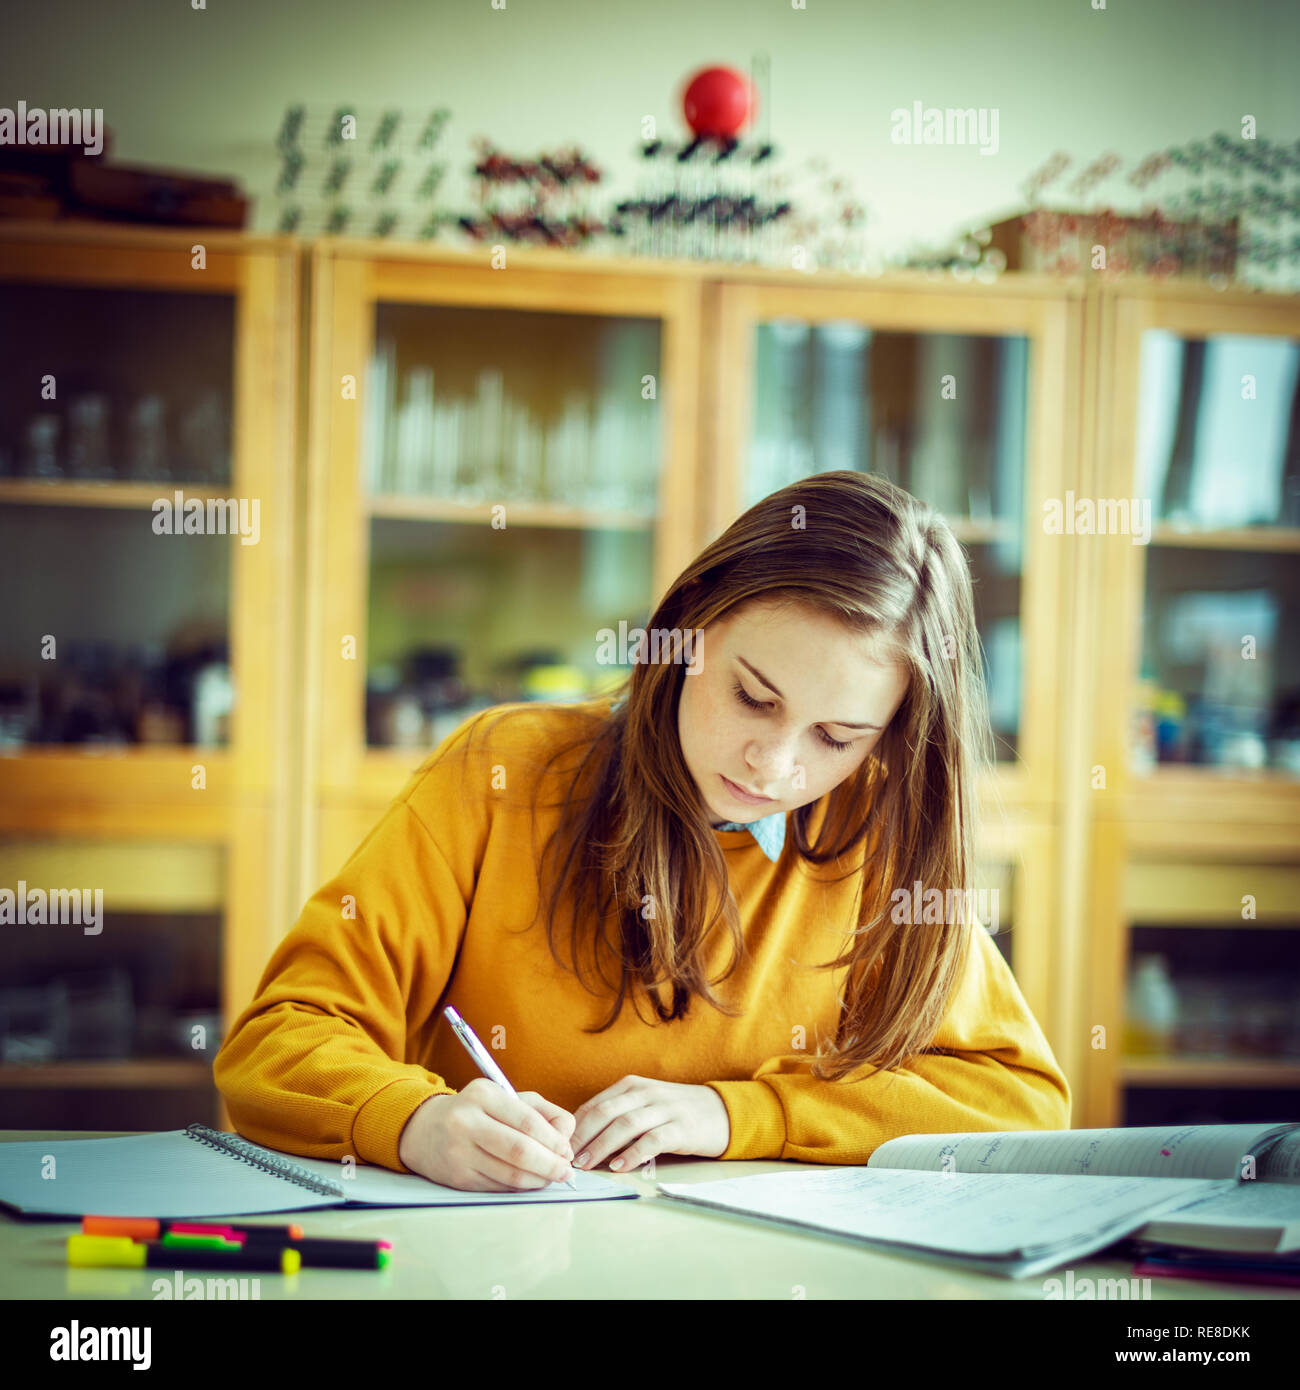 Young female college student in chemistry class, writing notes. Focused student in classroom. Authentic Education concept. Stock Photo